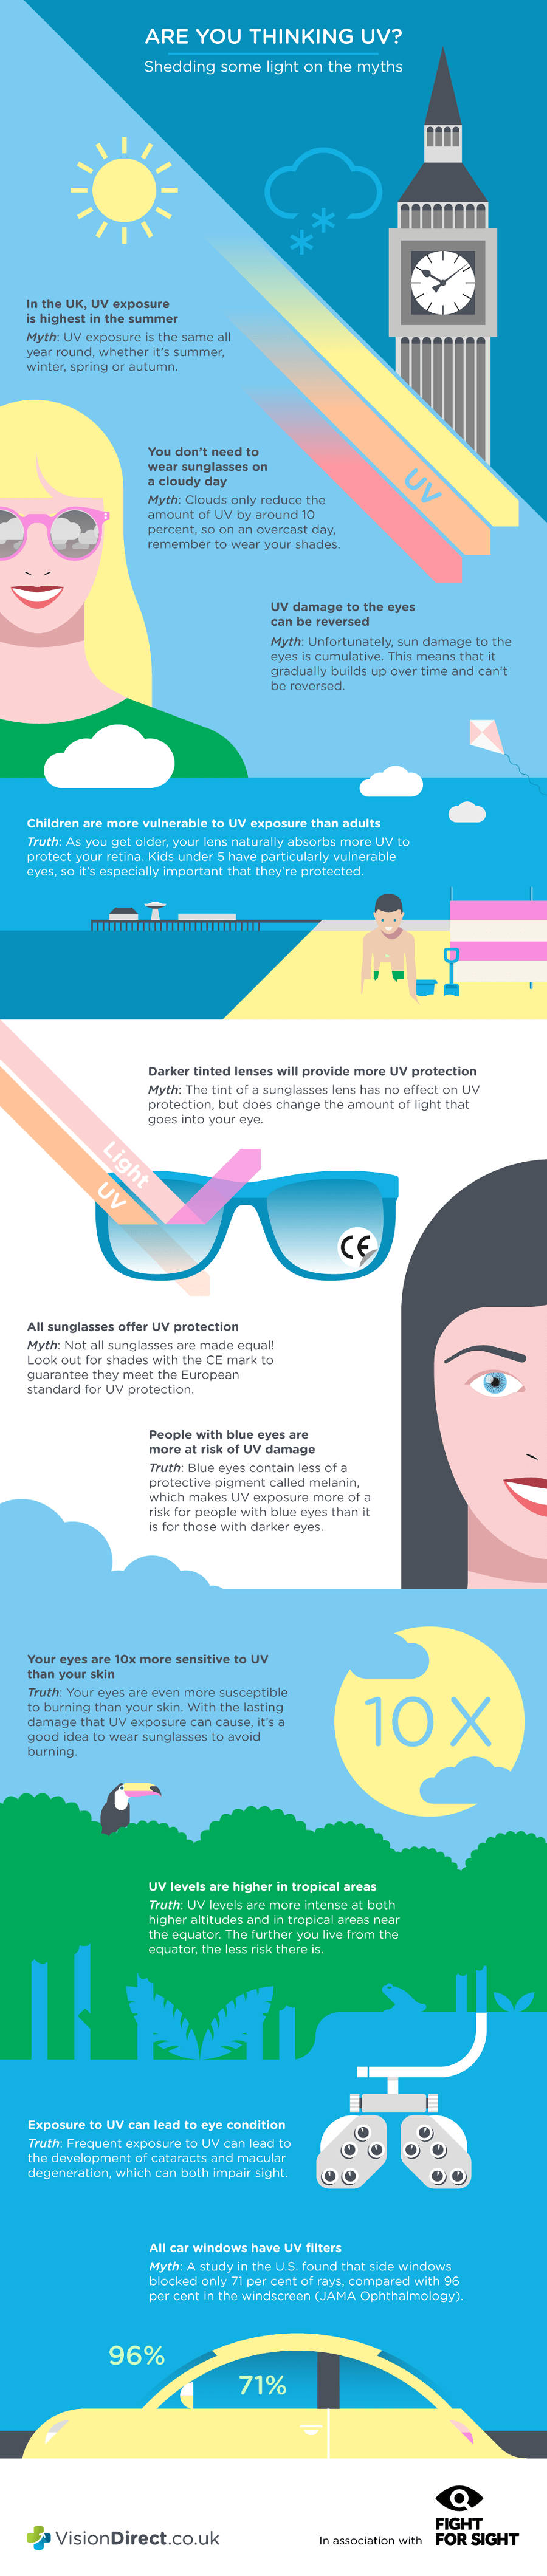 Infographic shedding some light on the myths around UV